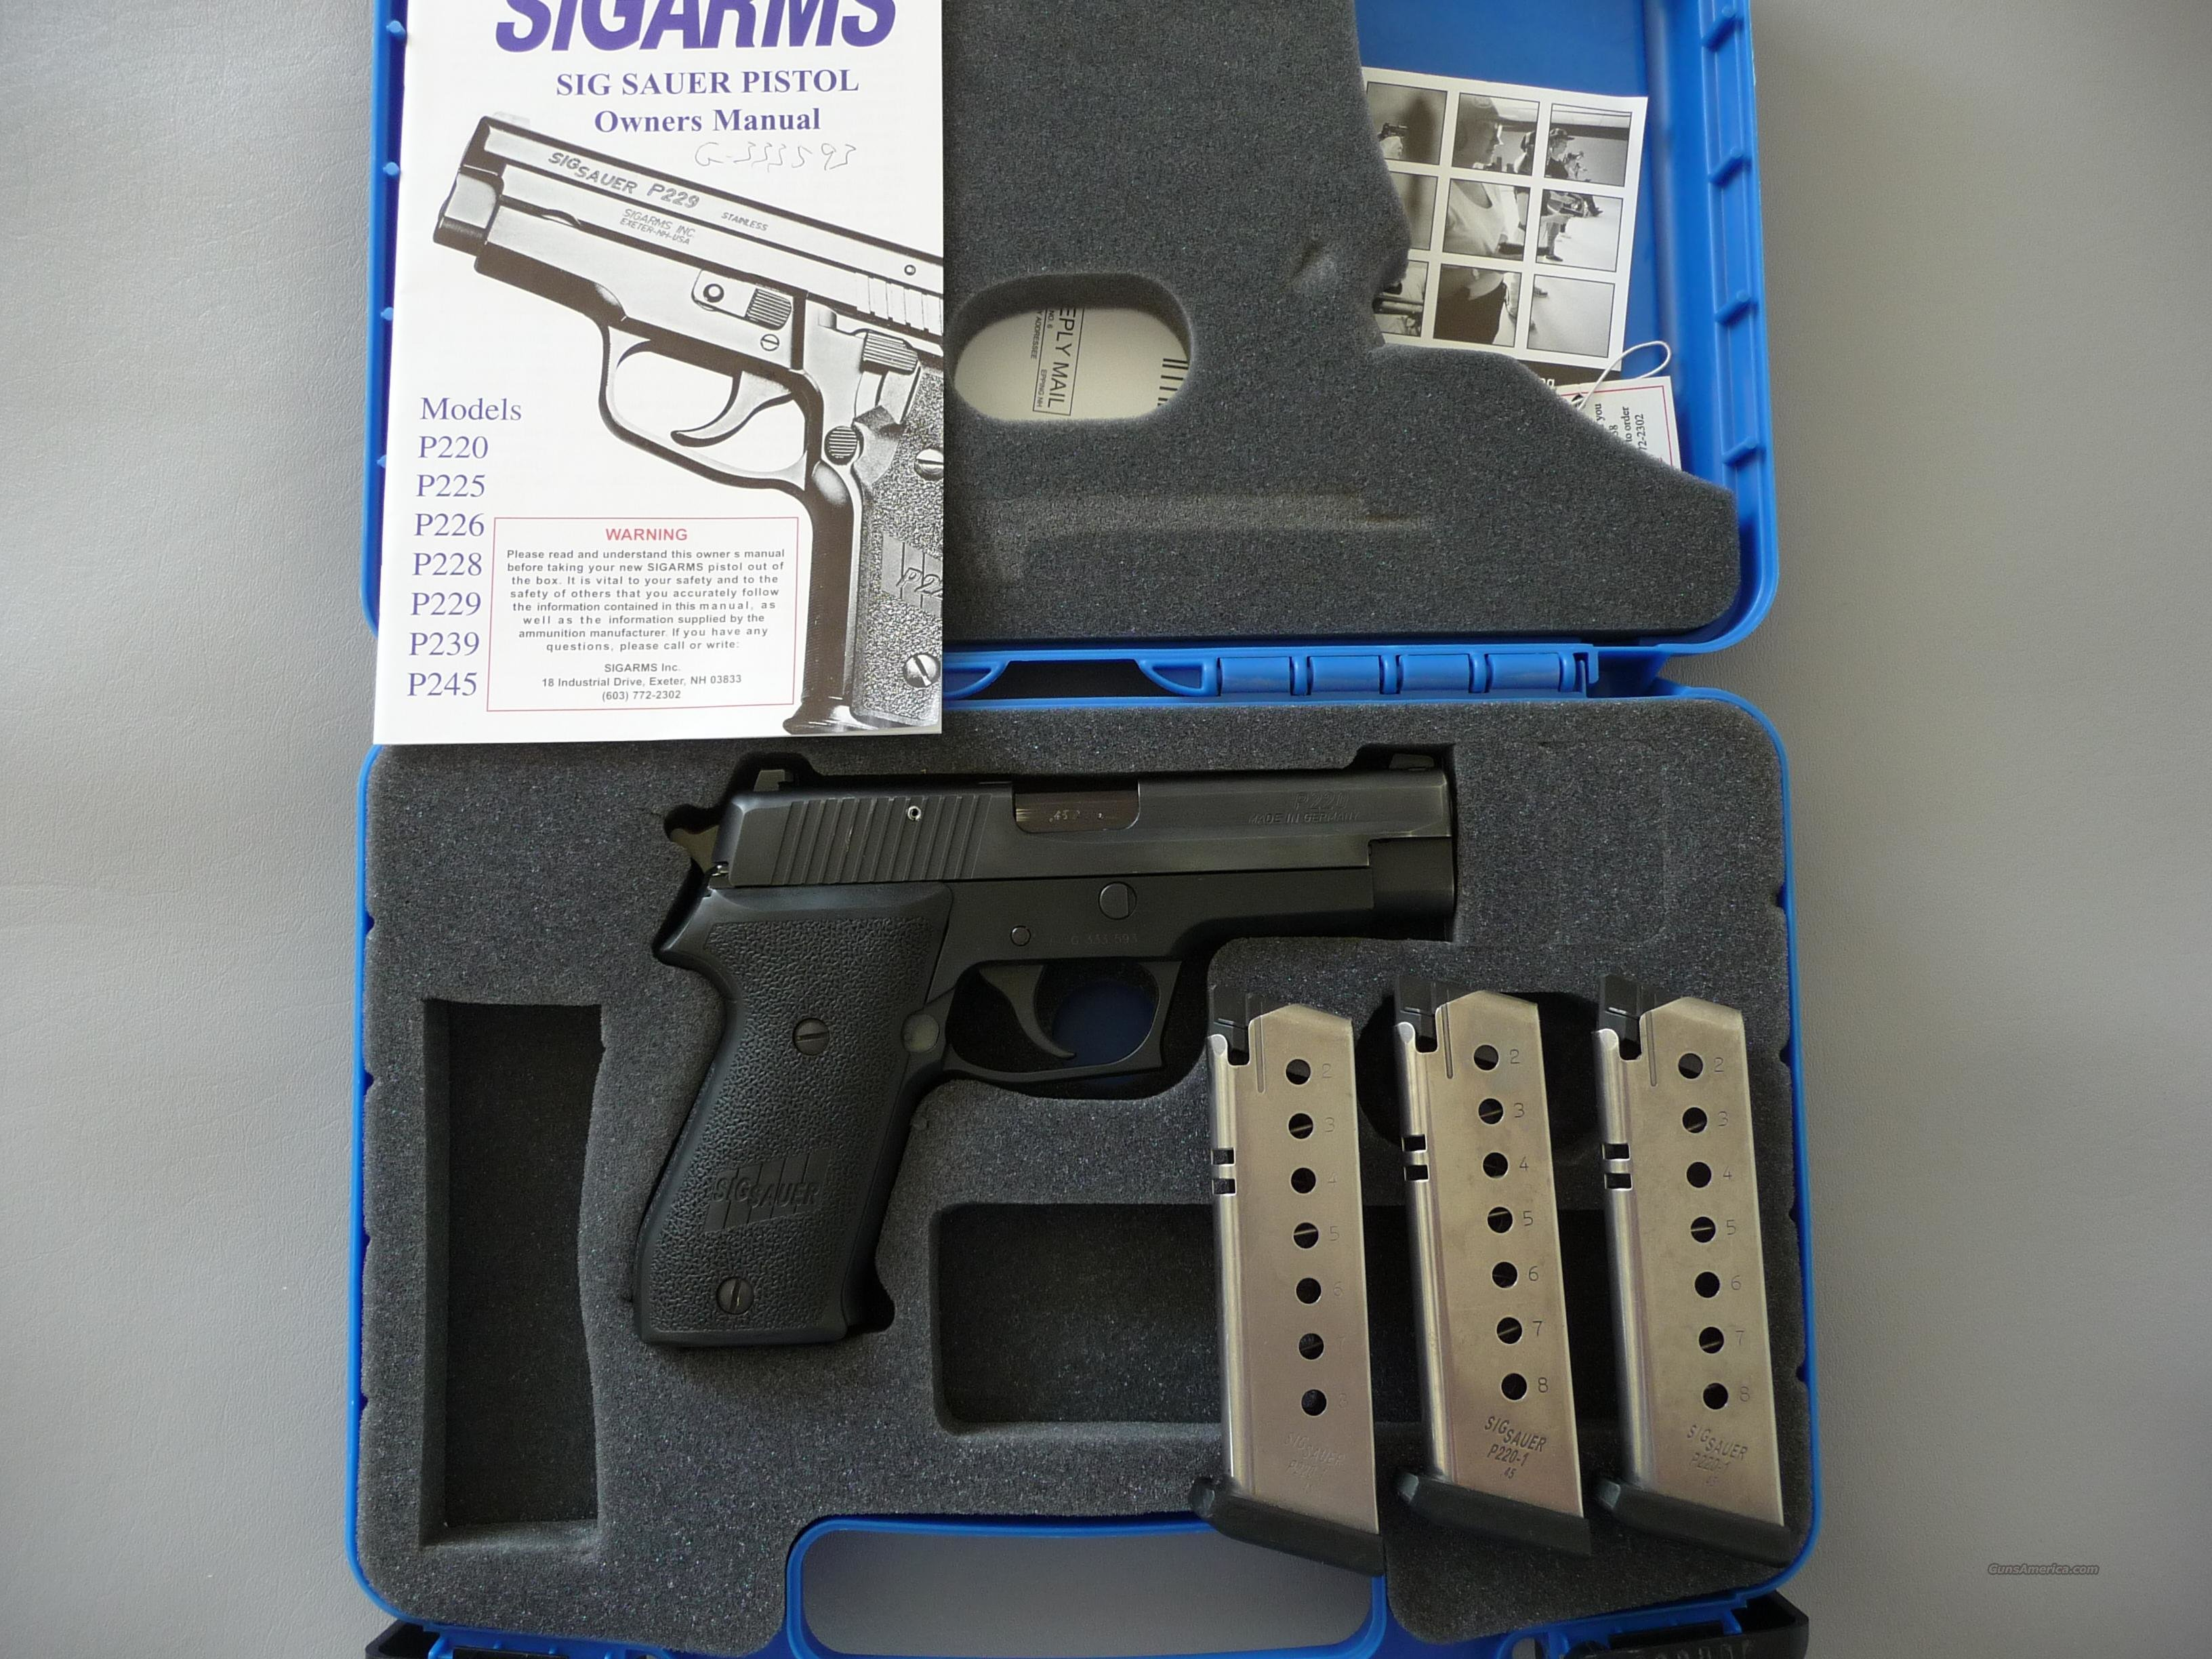 Sig Sauer P220 .45 Pistol, Police Trade-In, LAYAWAY AVAILABLE  Guns > Pistols > Sig - Sauer/Sigarms Pistols > P220